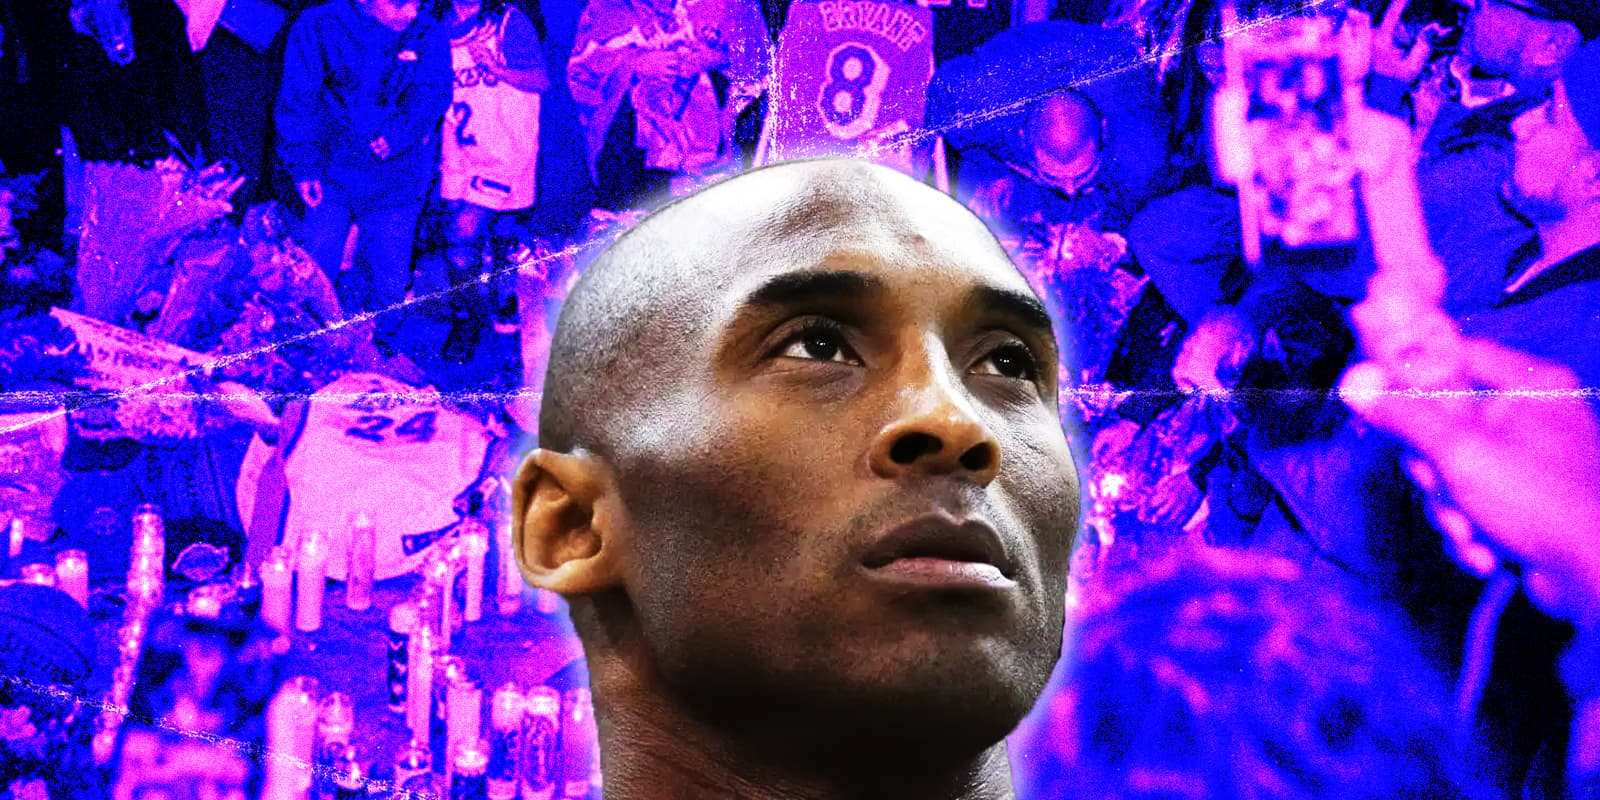 Twitter reactions to Kobe's death reveal the worst elements of our culture